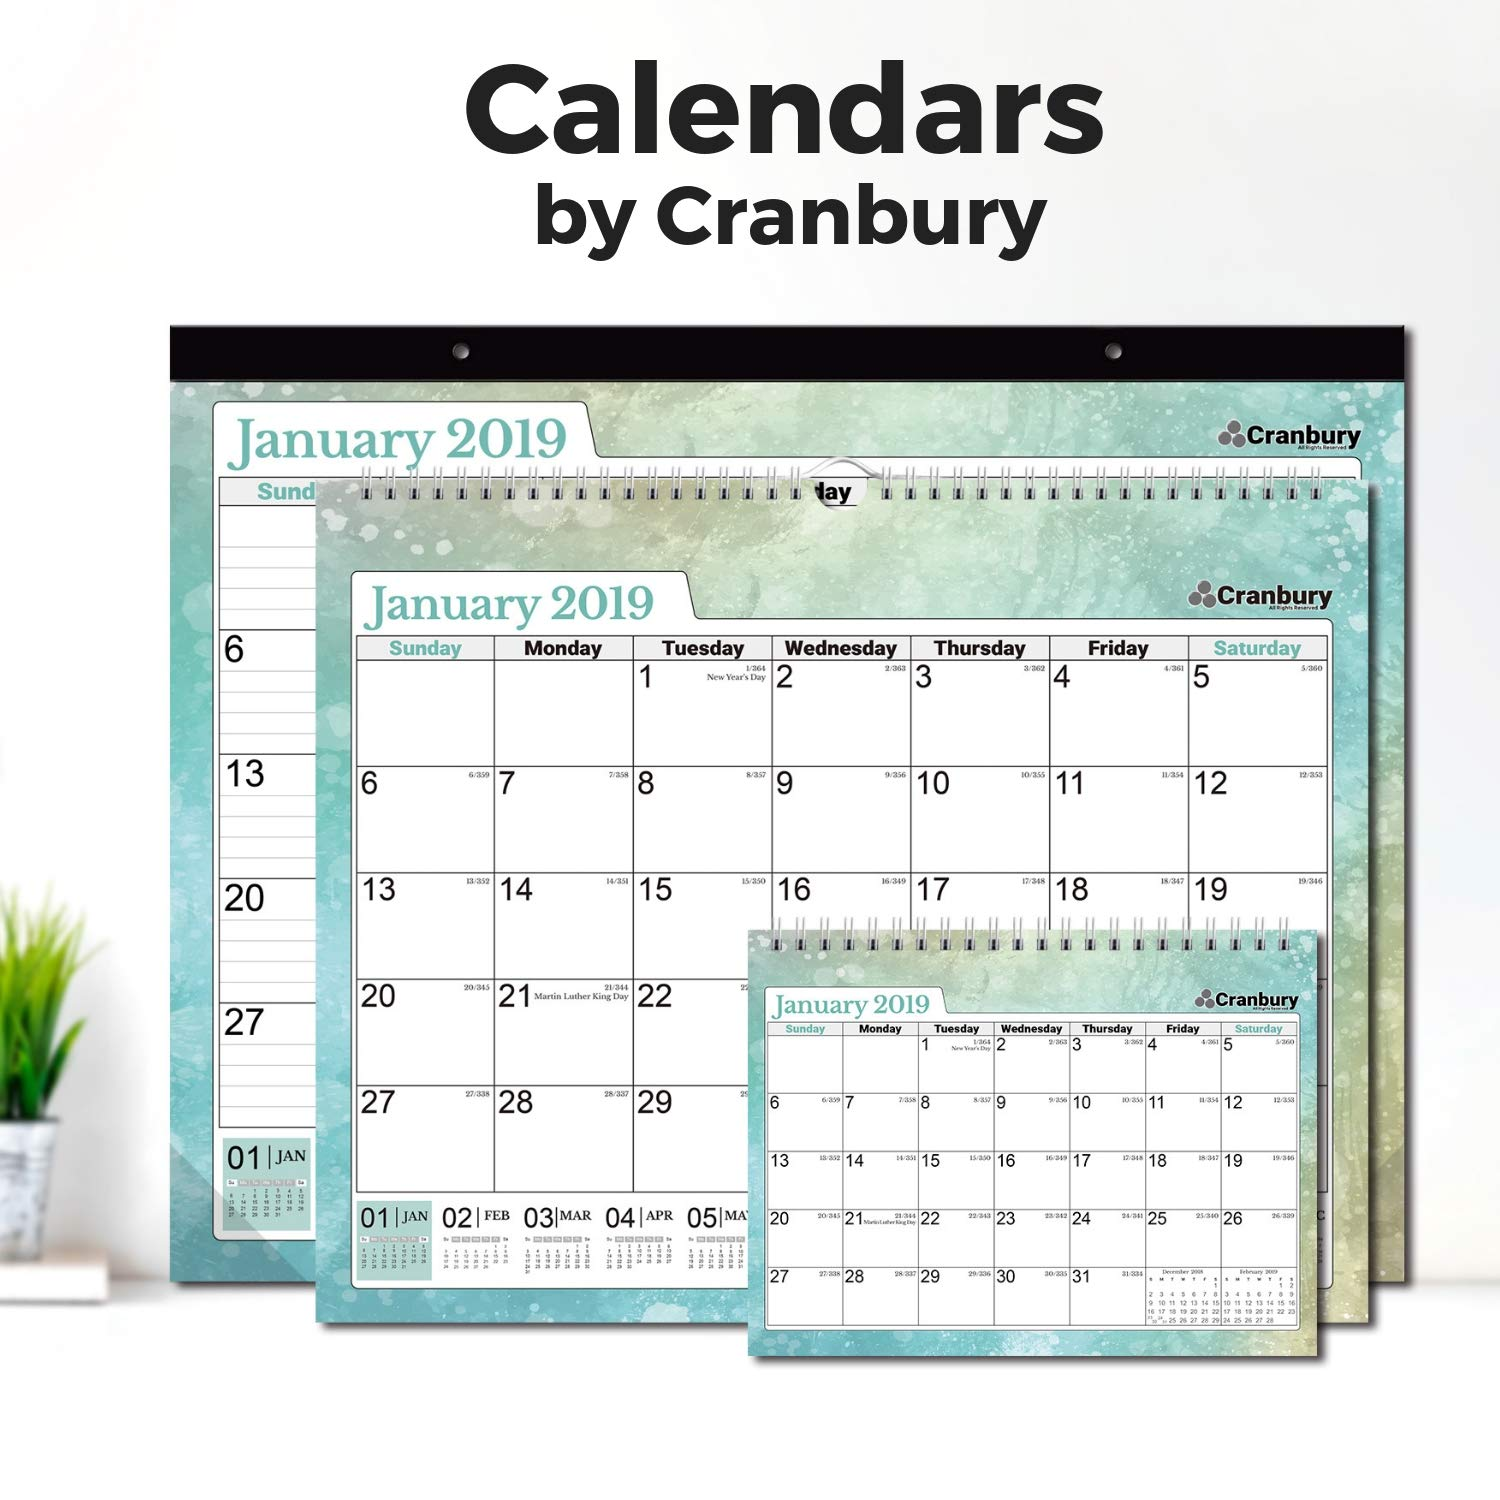 Cranbury Small Desk Calendar 2019 Monthly: Flip Desktop Counter Top Calendars with Bonus Planner Stickers for Family and Office, 8''x6'' (Colorful), Sturdy, USE Now Through December 2019 by Cranbury (Image #8)